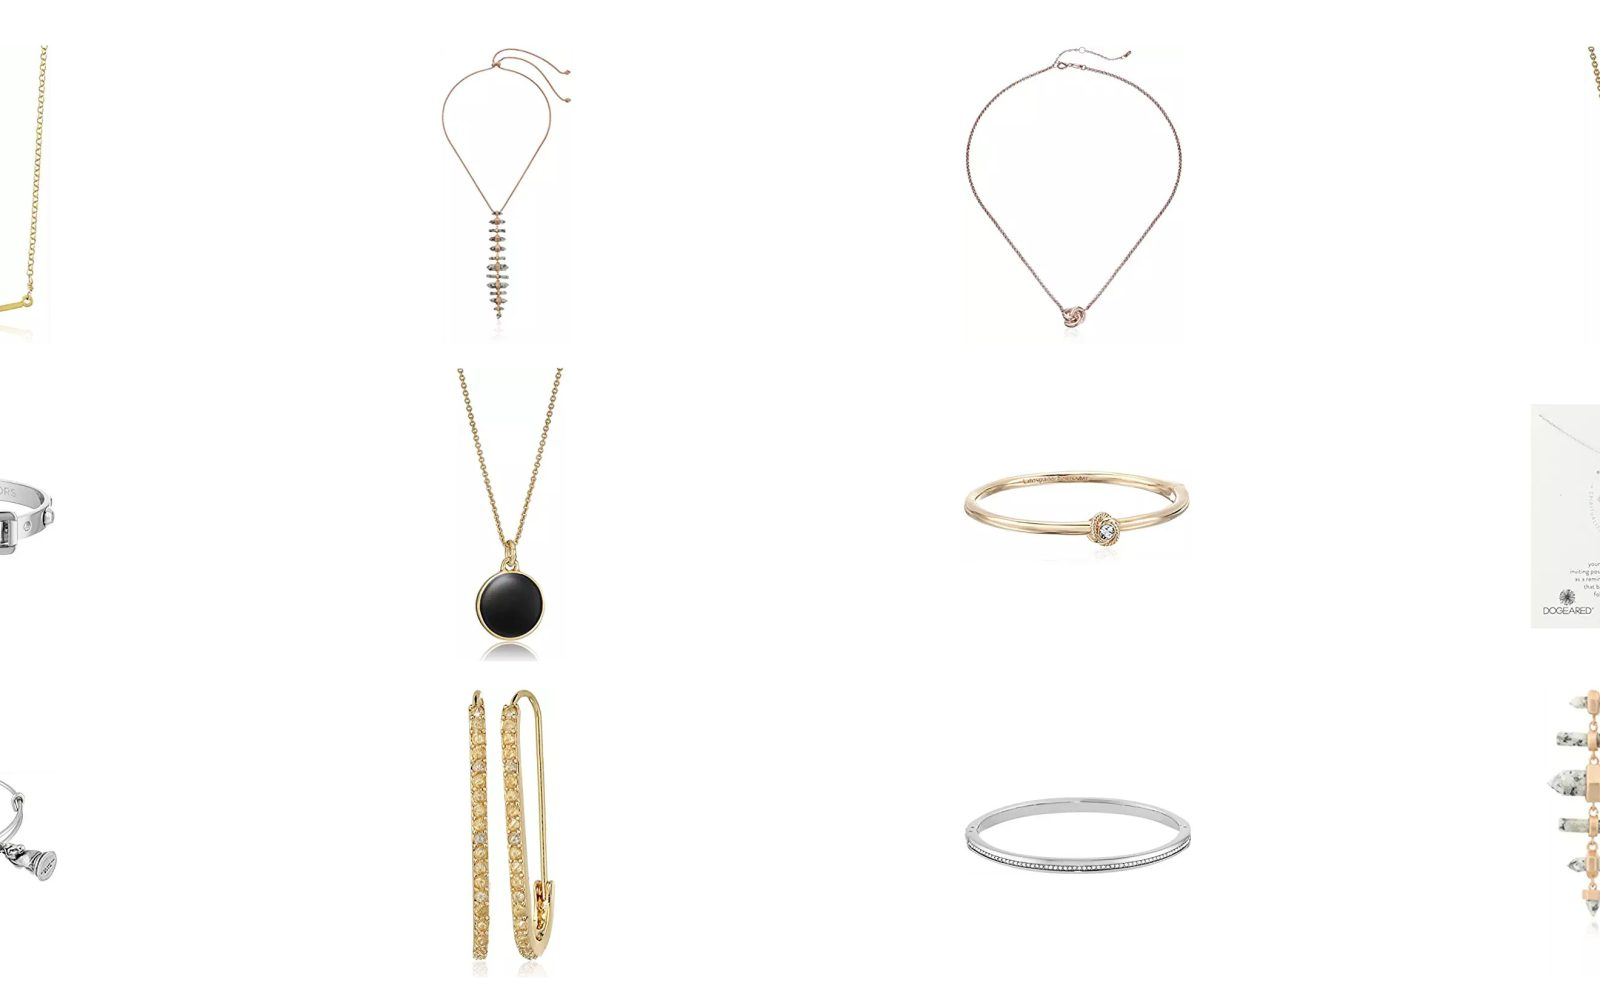 c4f0d14fbc4d Amazon s 1-day Jewelry sale just in time for Valentine s Day  up to 50% off  Michael Kors